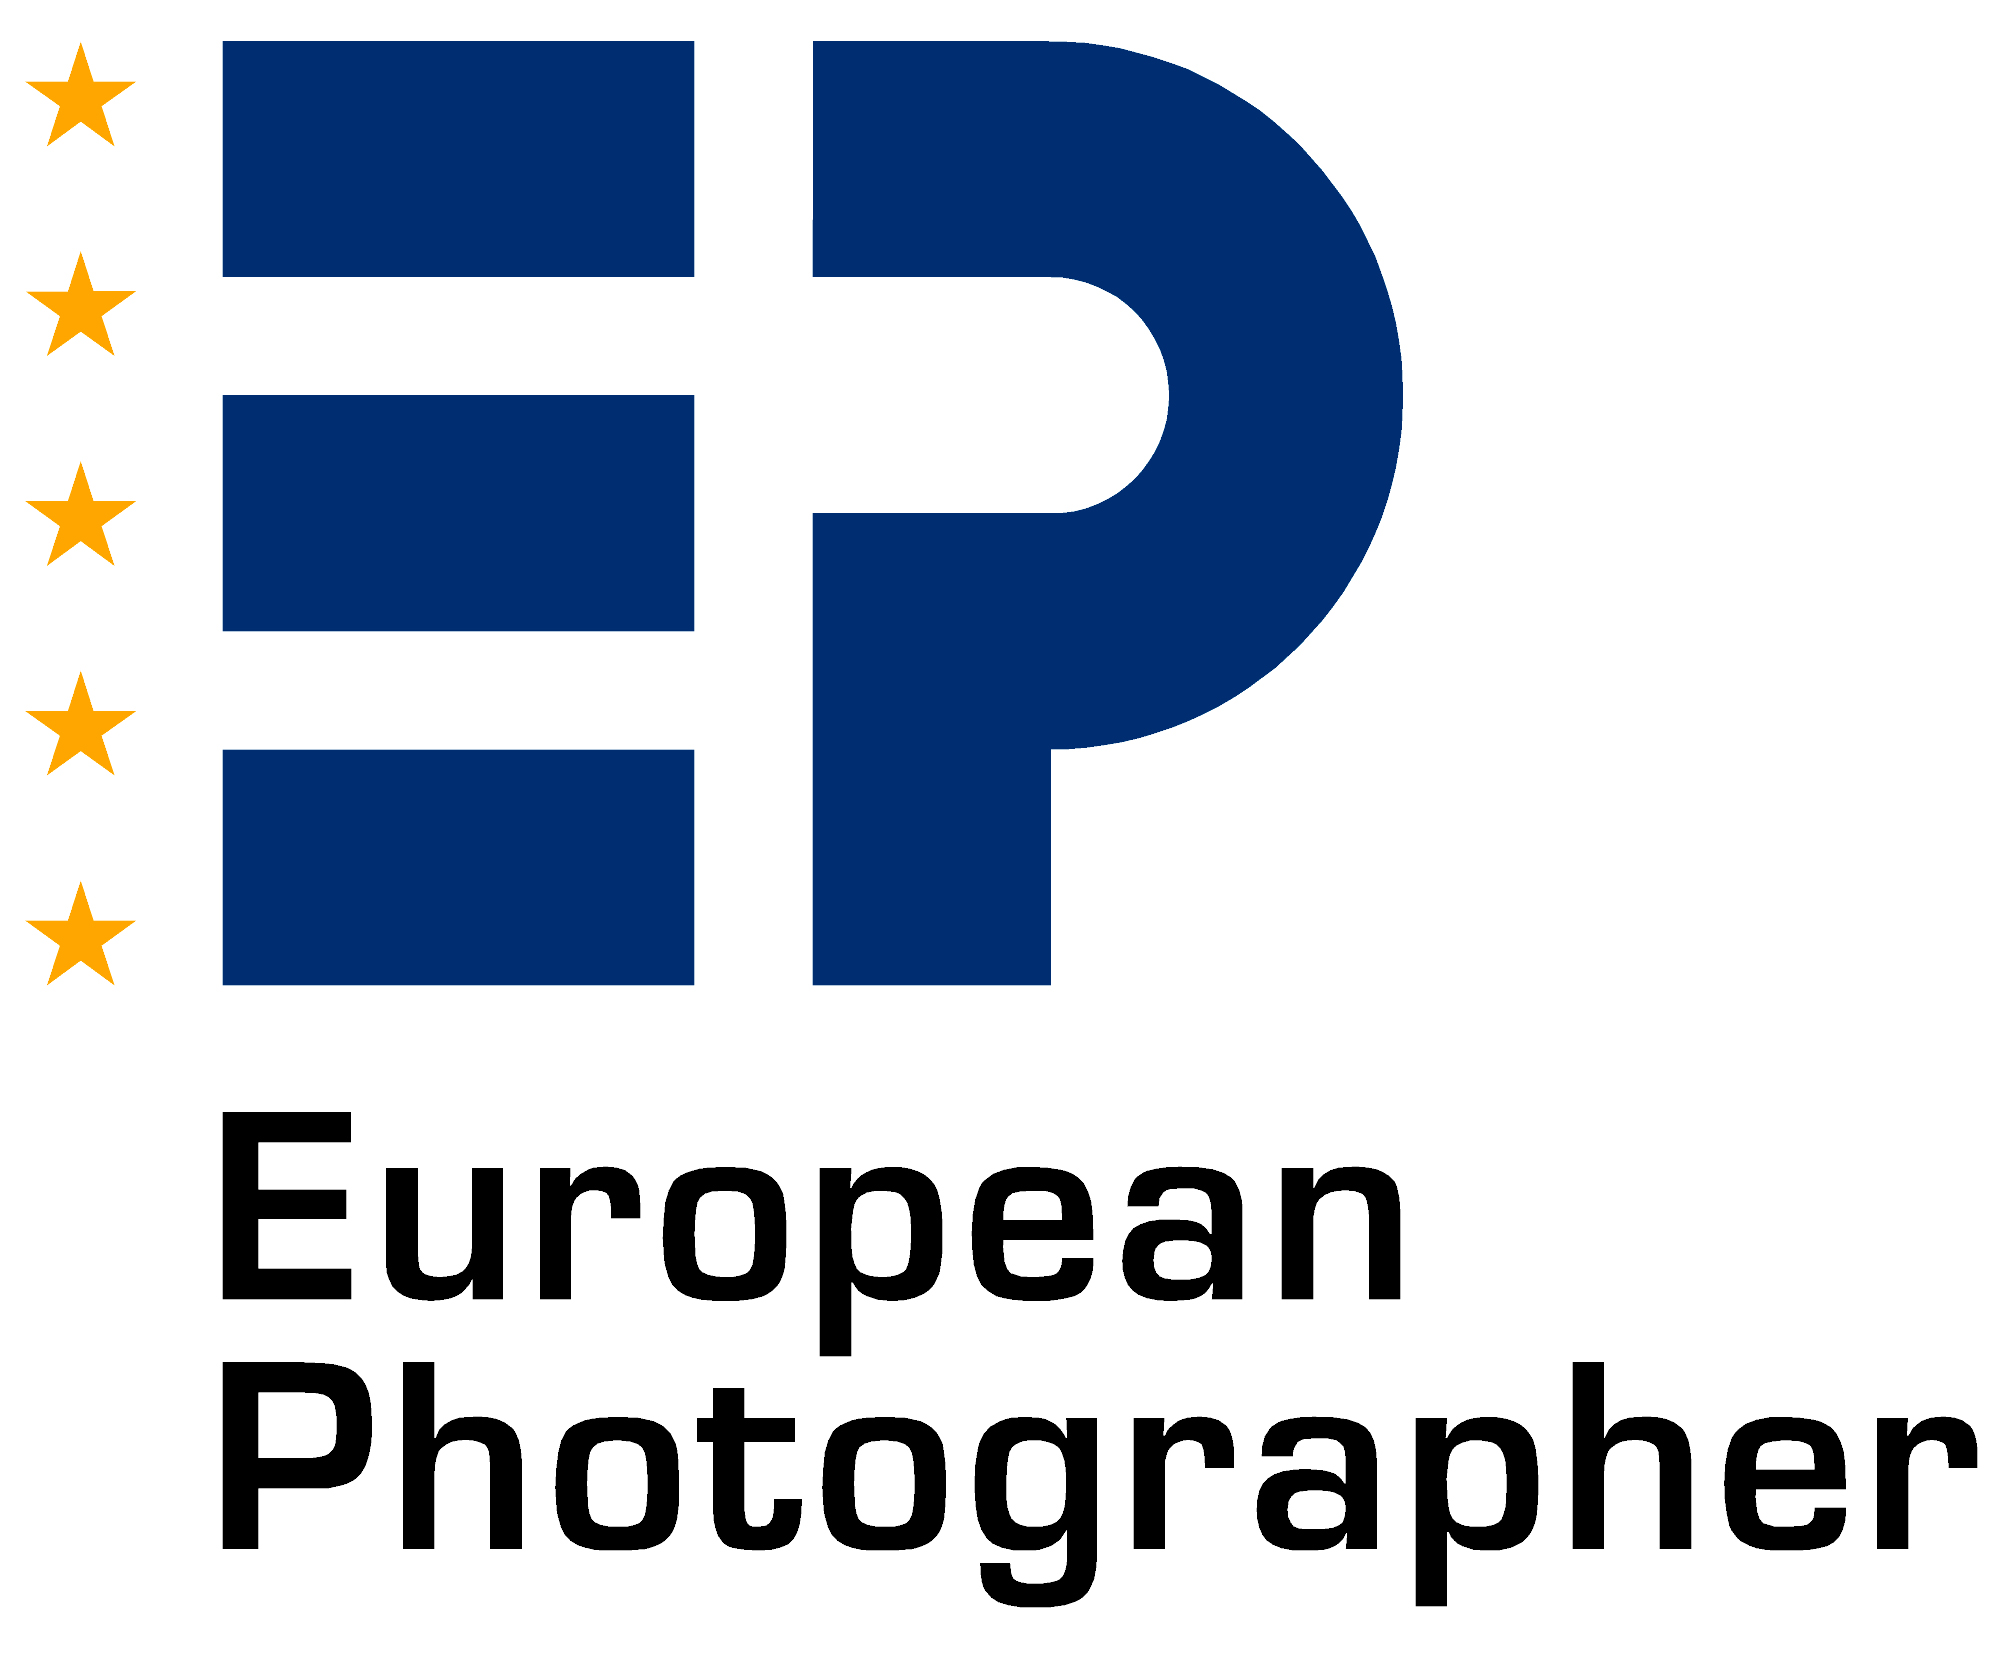 European Photographer label